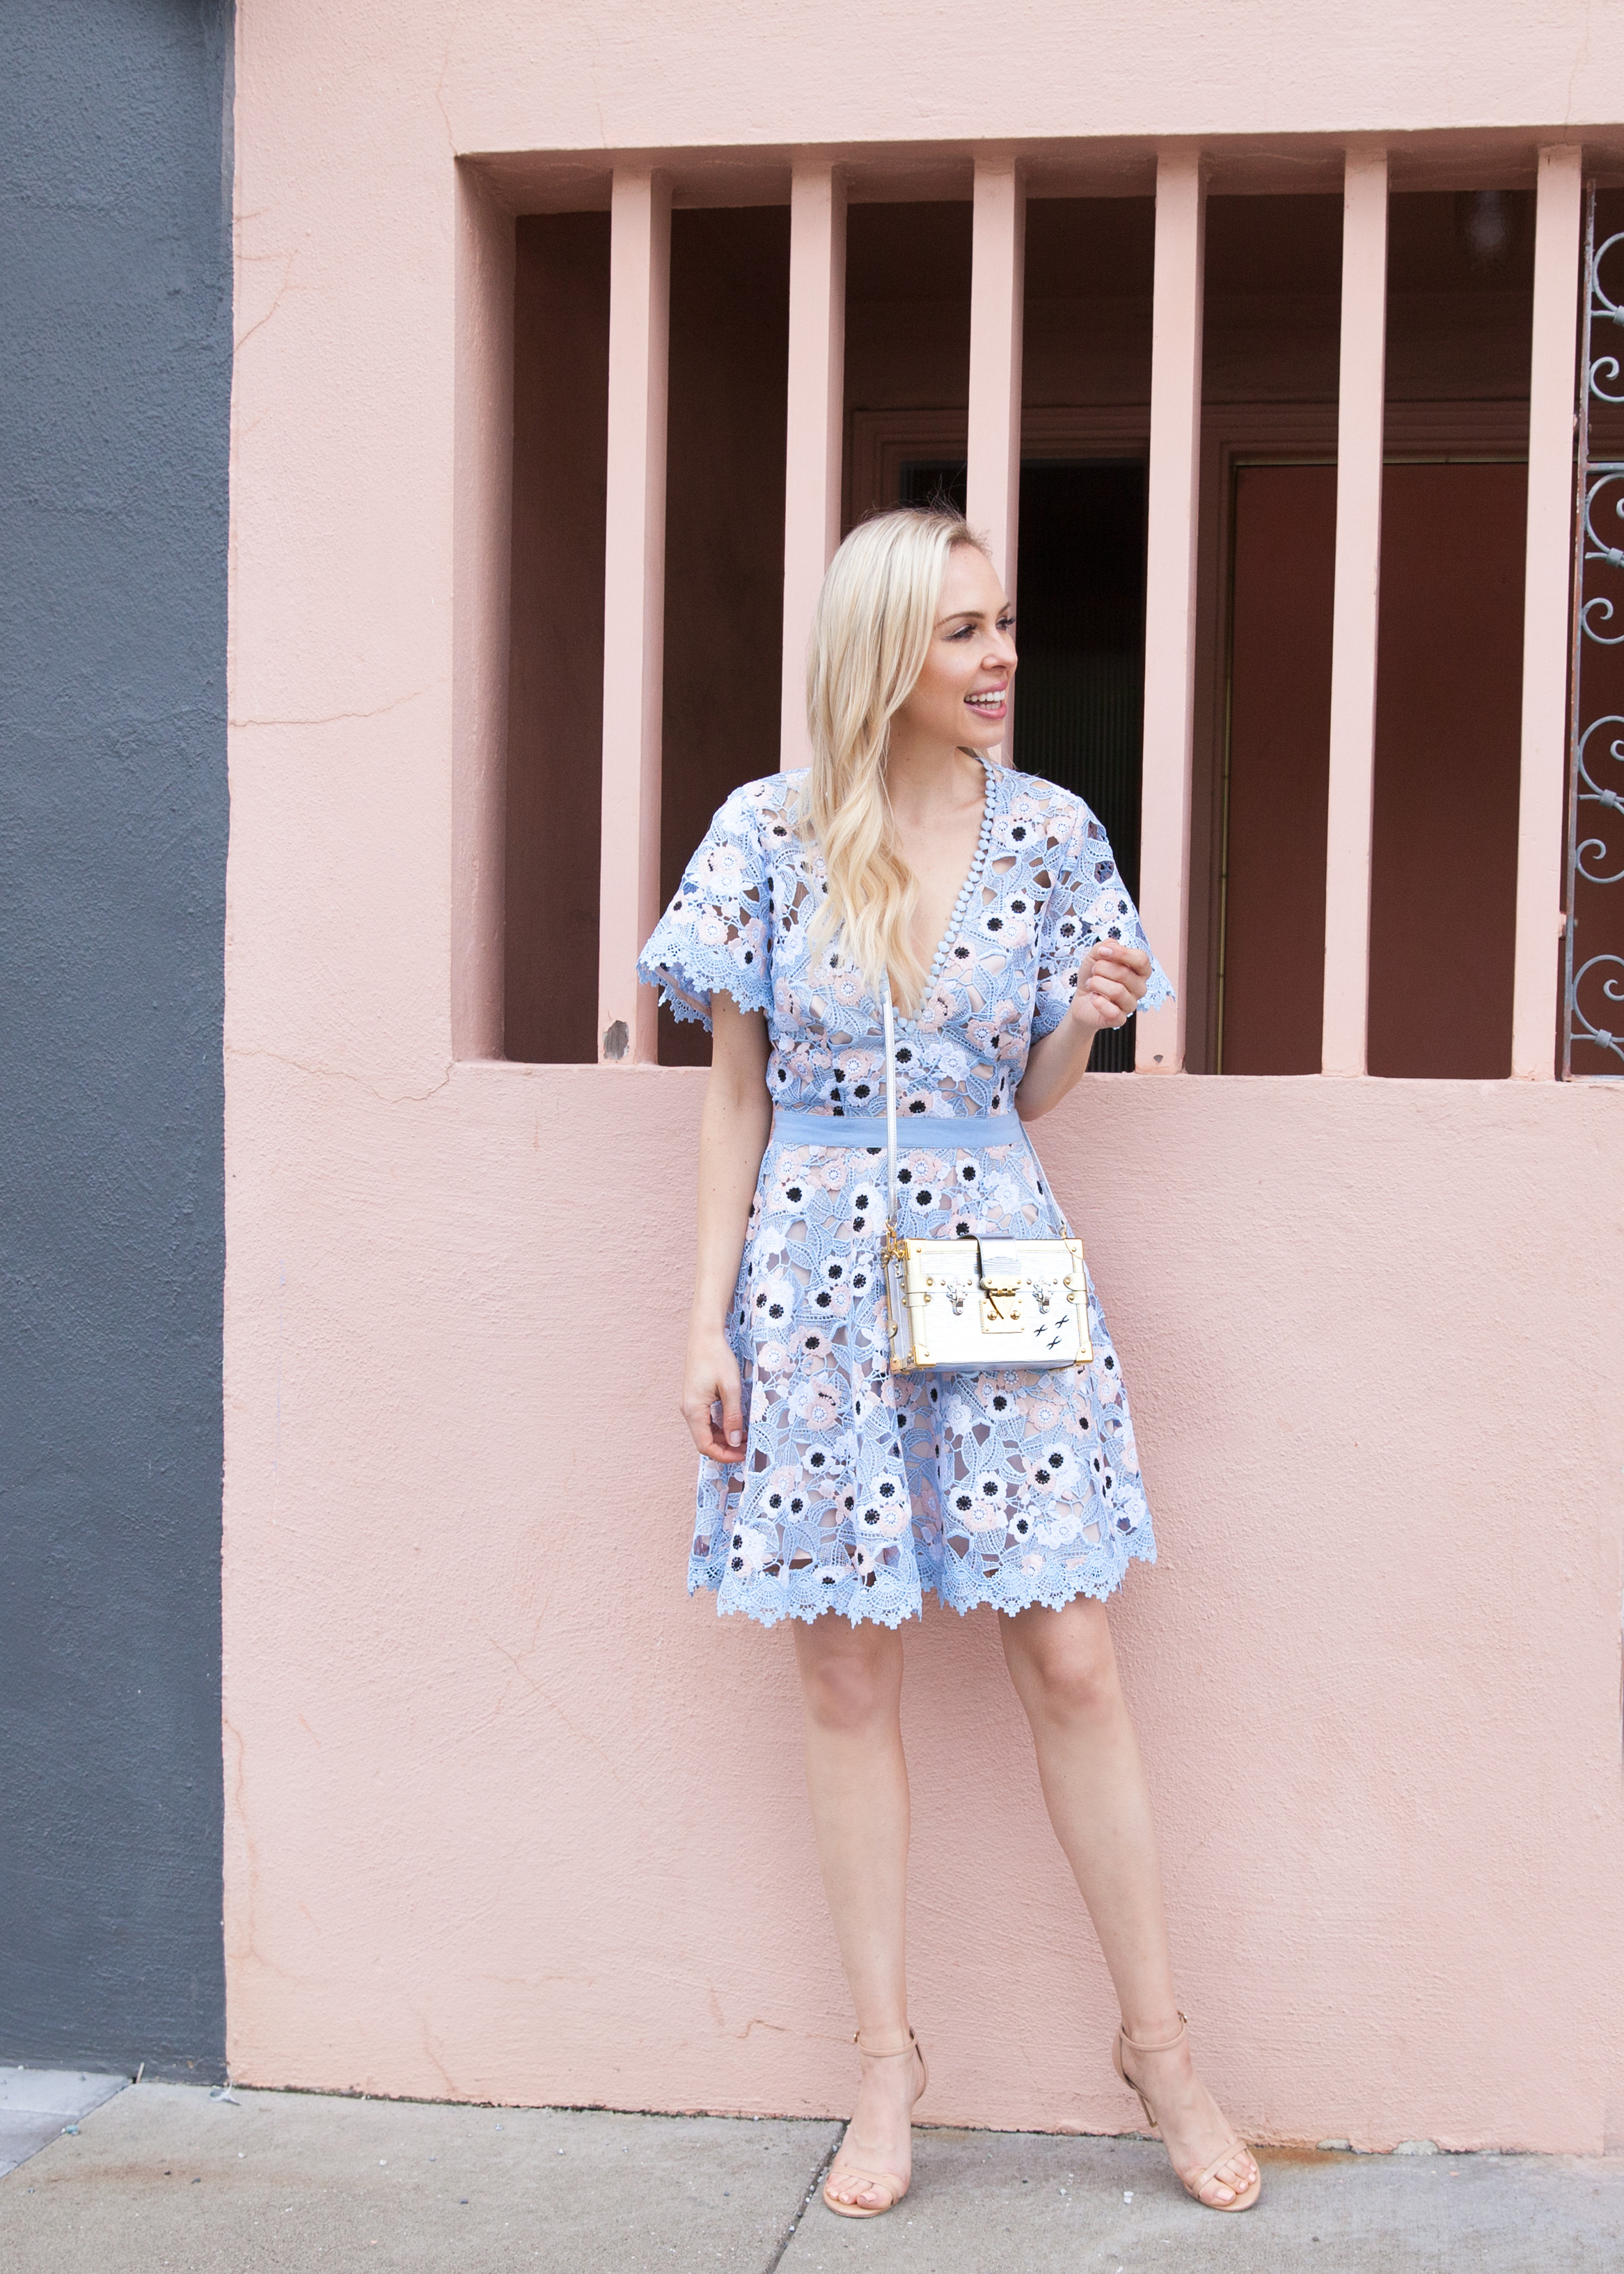 Wedding guest dresses printed pastels lombard and fifth for Pastel dresses for wedding guests